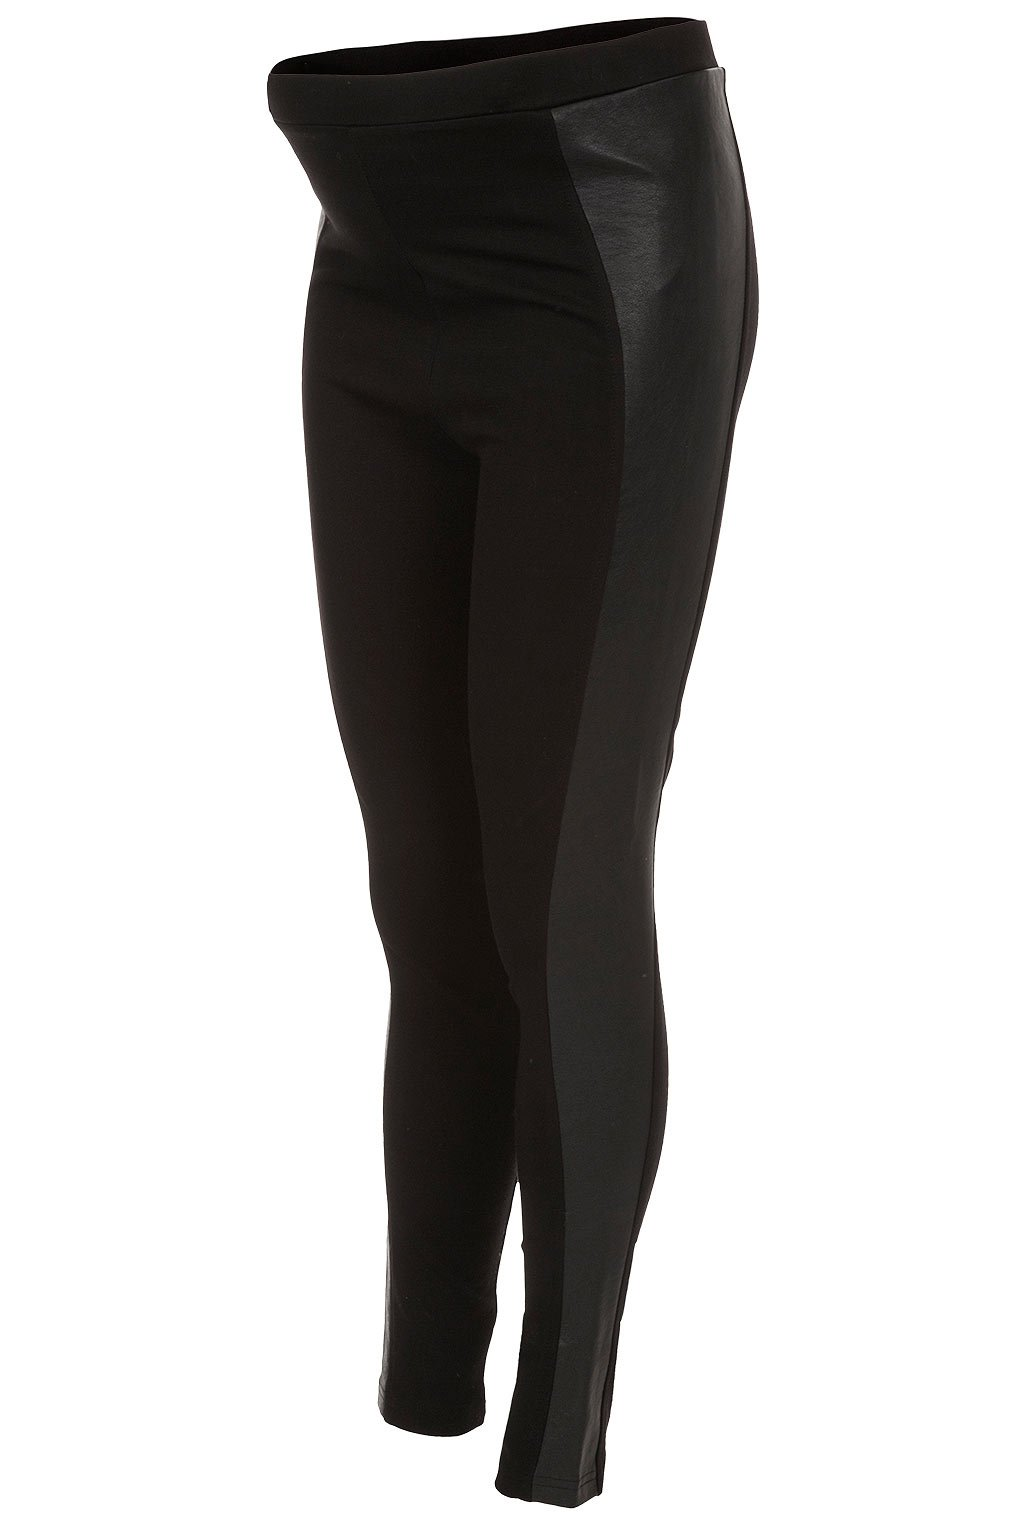 Find great deals on eBay for topshop leggings. Shop with confidence.